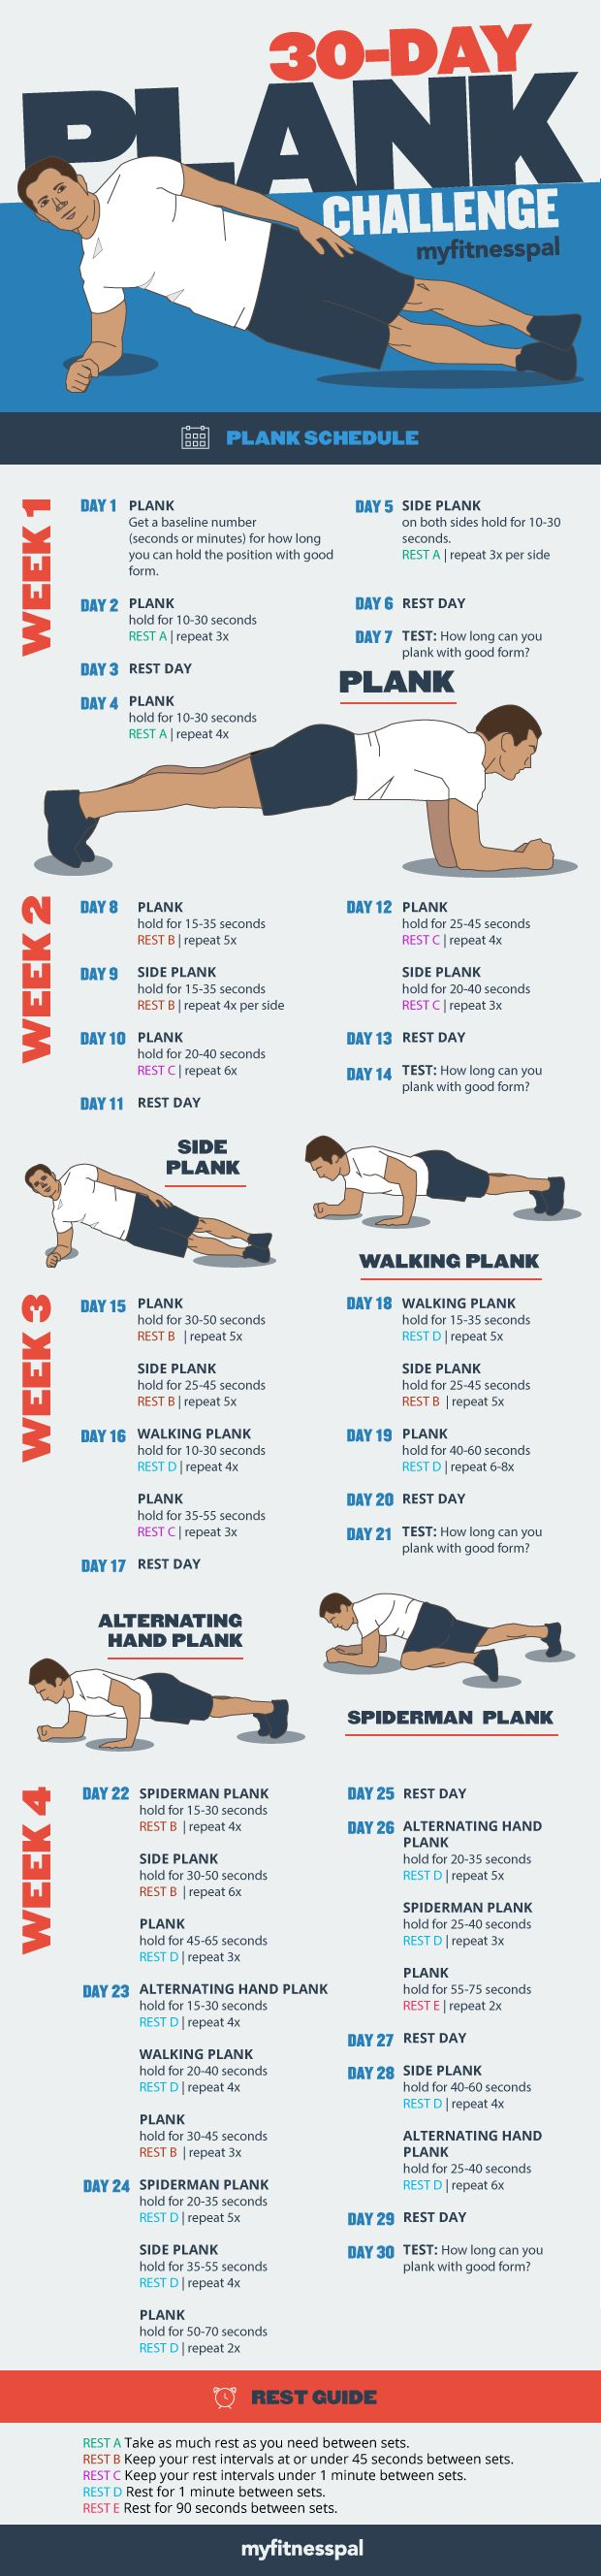 Tomorrow!... Want stronger arms, back, legs and butt this month? Take our 30-Day Plank Challenge, and you'll see amazing results! #myfitnesspal